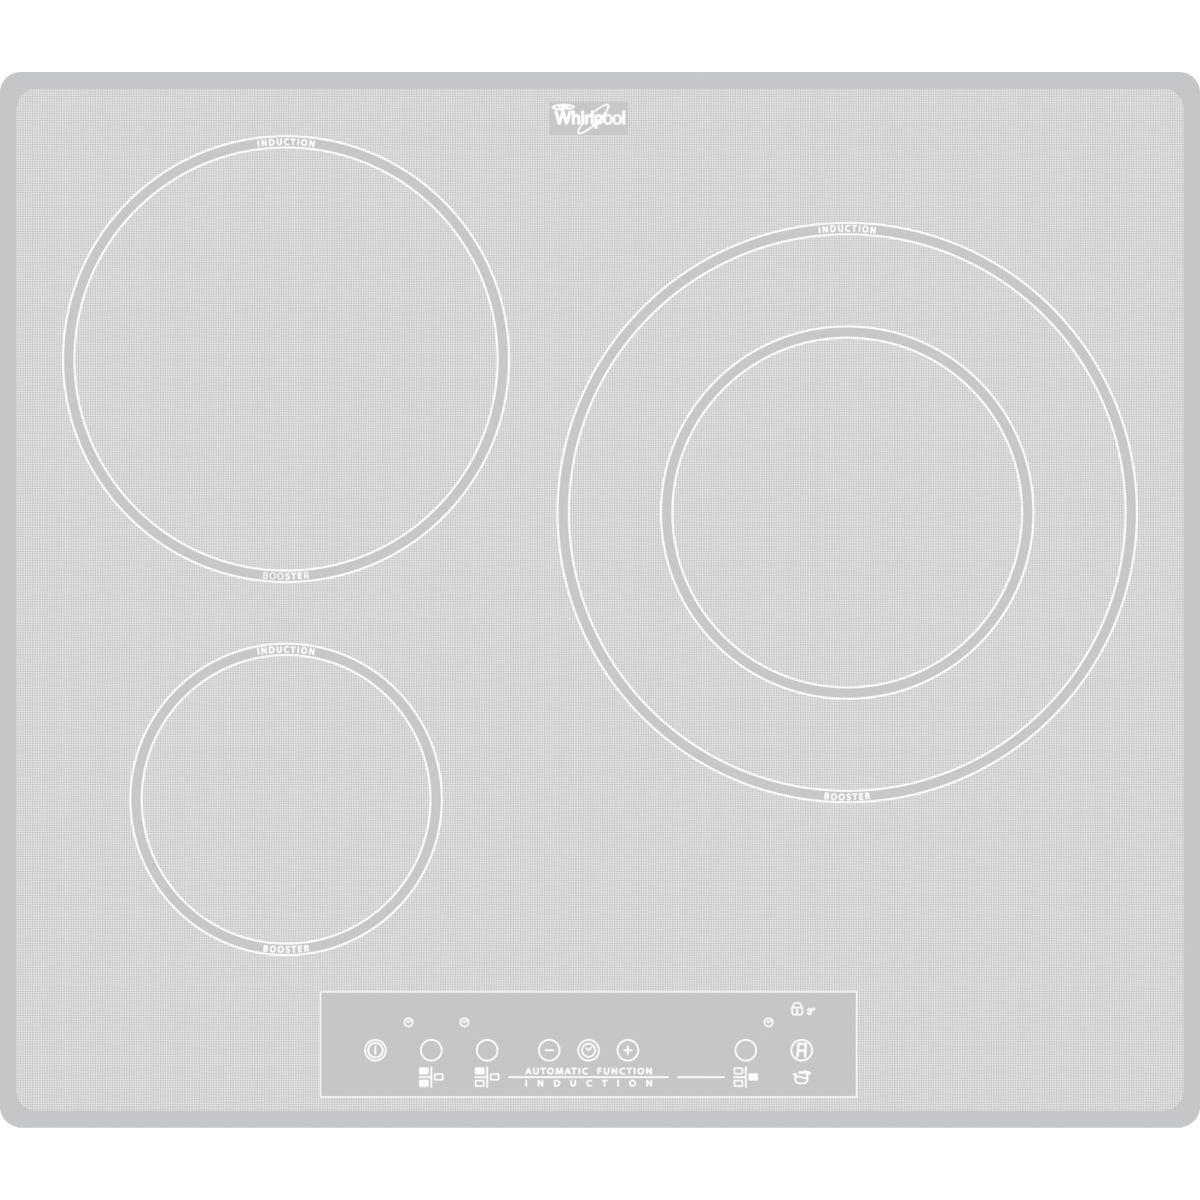 Table induction whirlpool acm680newh - livraison offerte : code livp